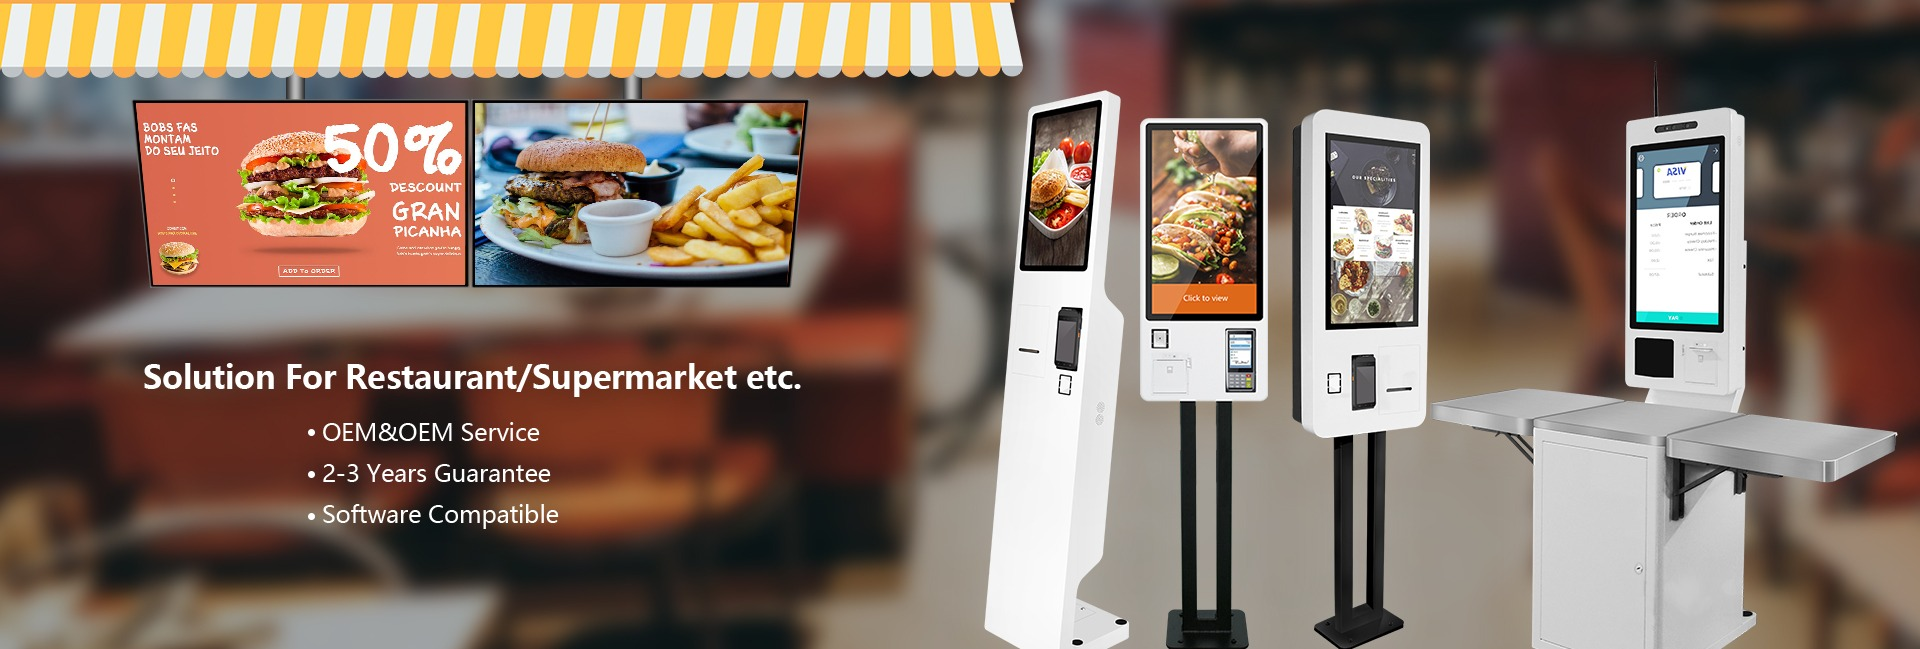 pos system machine Digital Screens and self order kiosk